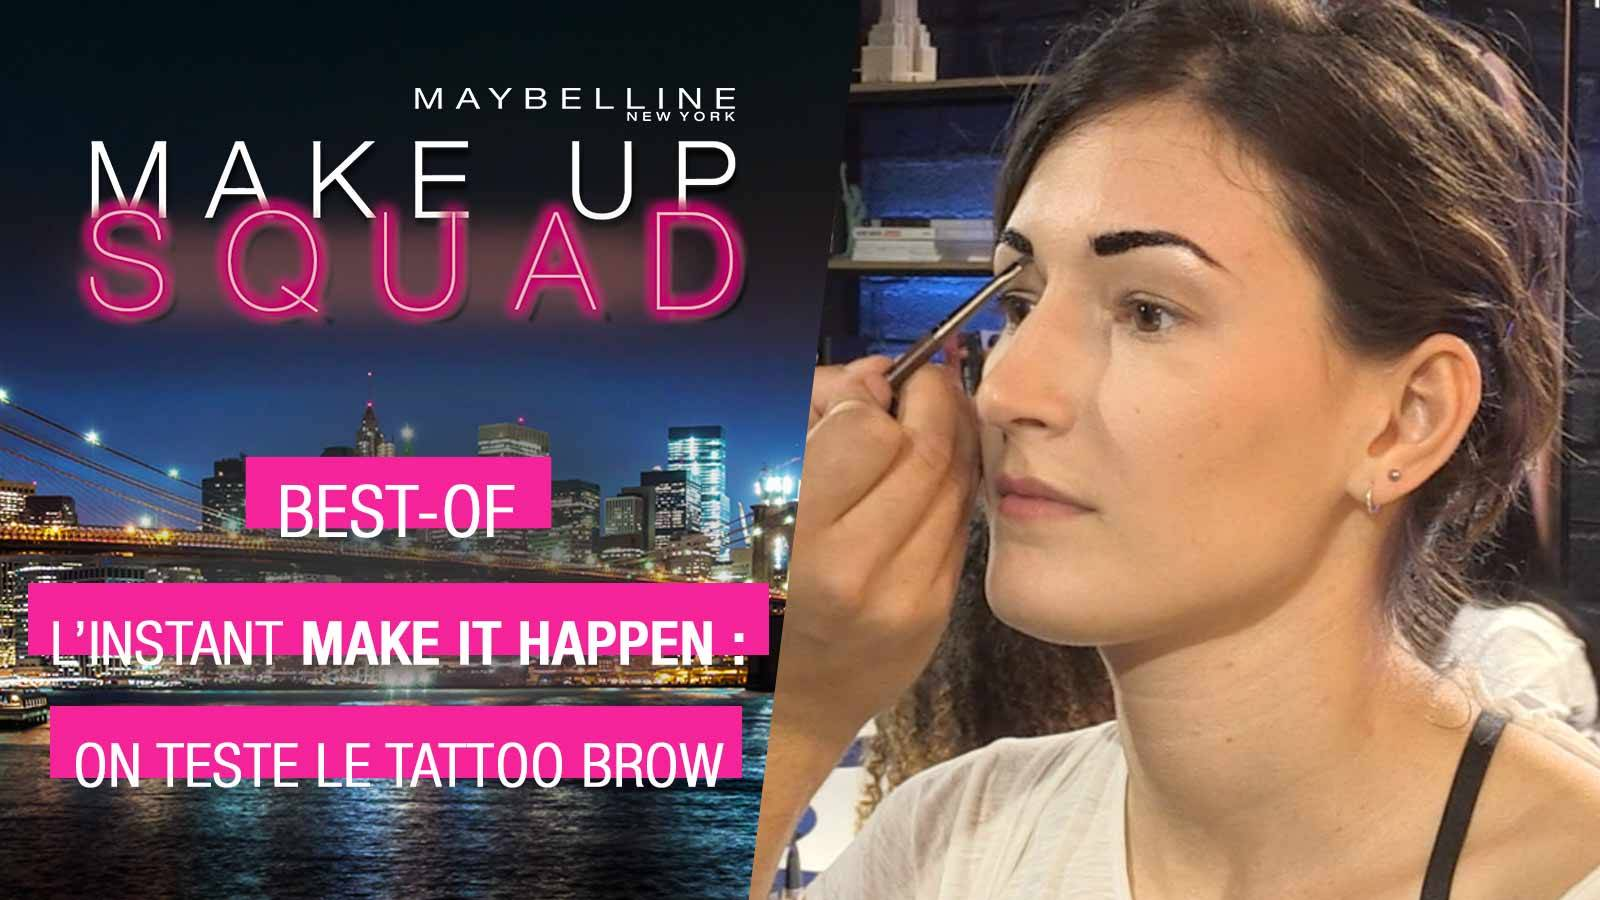 maybelline-makeup-squad-crash-test-tattoo-brow-video-16x9